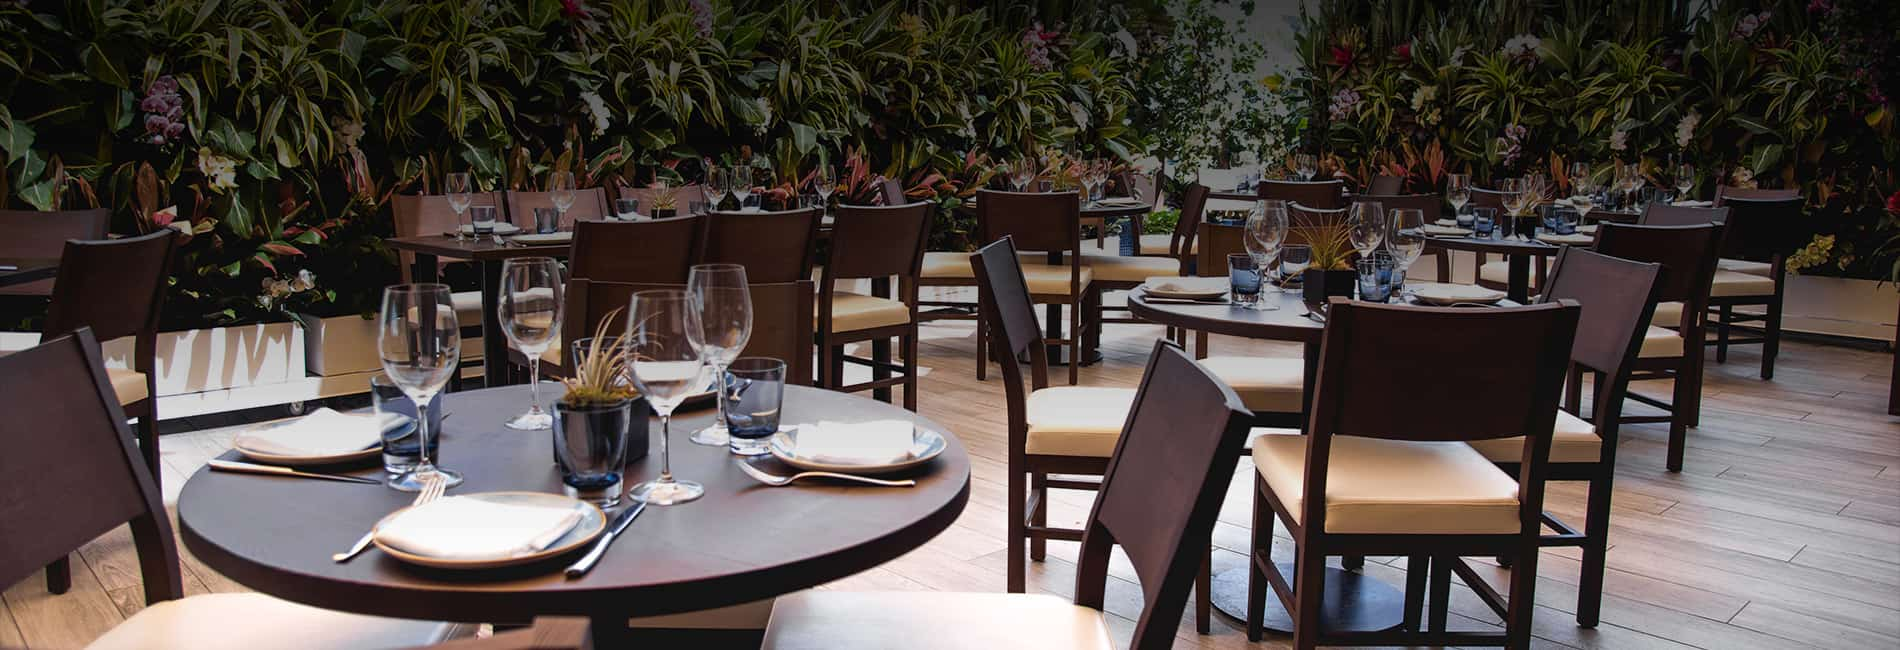 Serafina Miami - courtyard of the restaurant